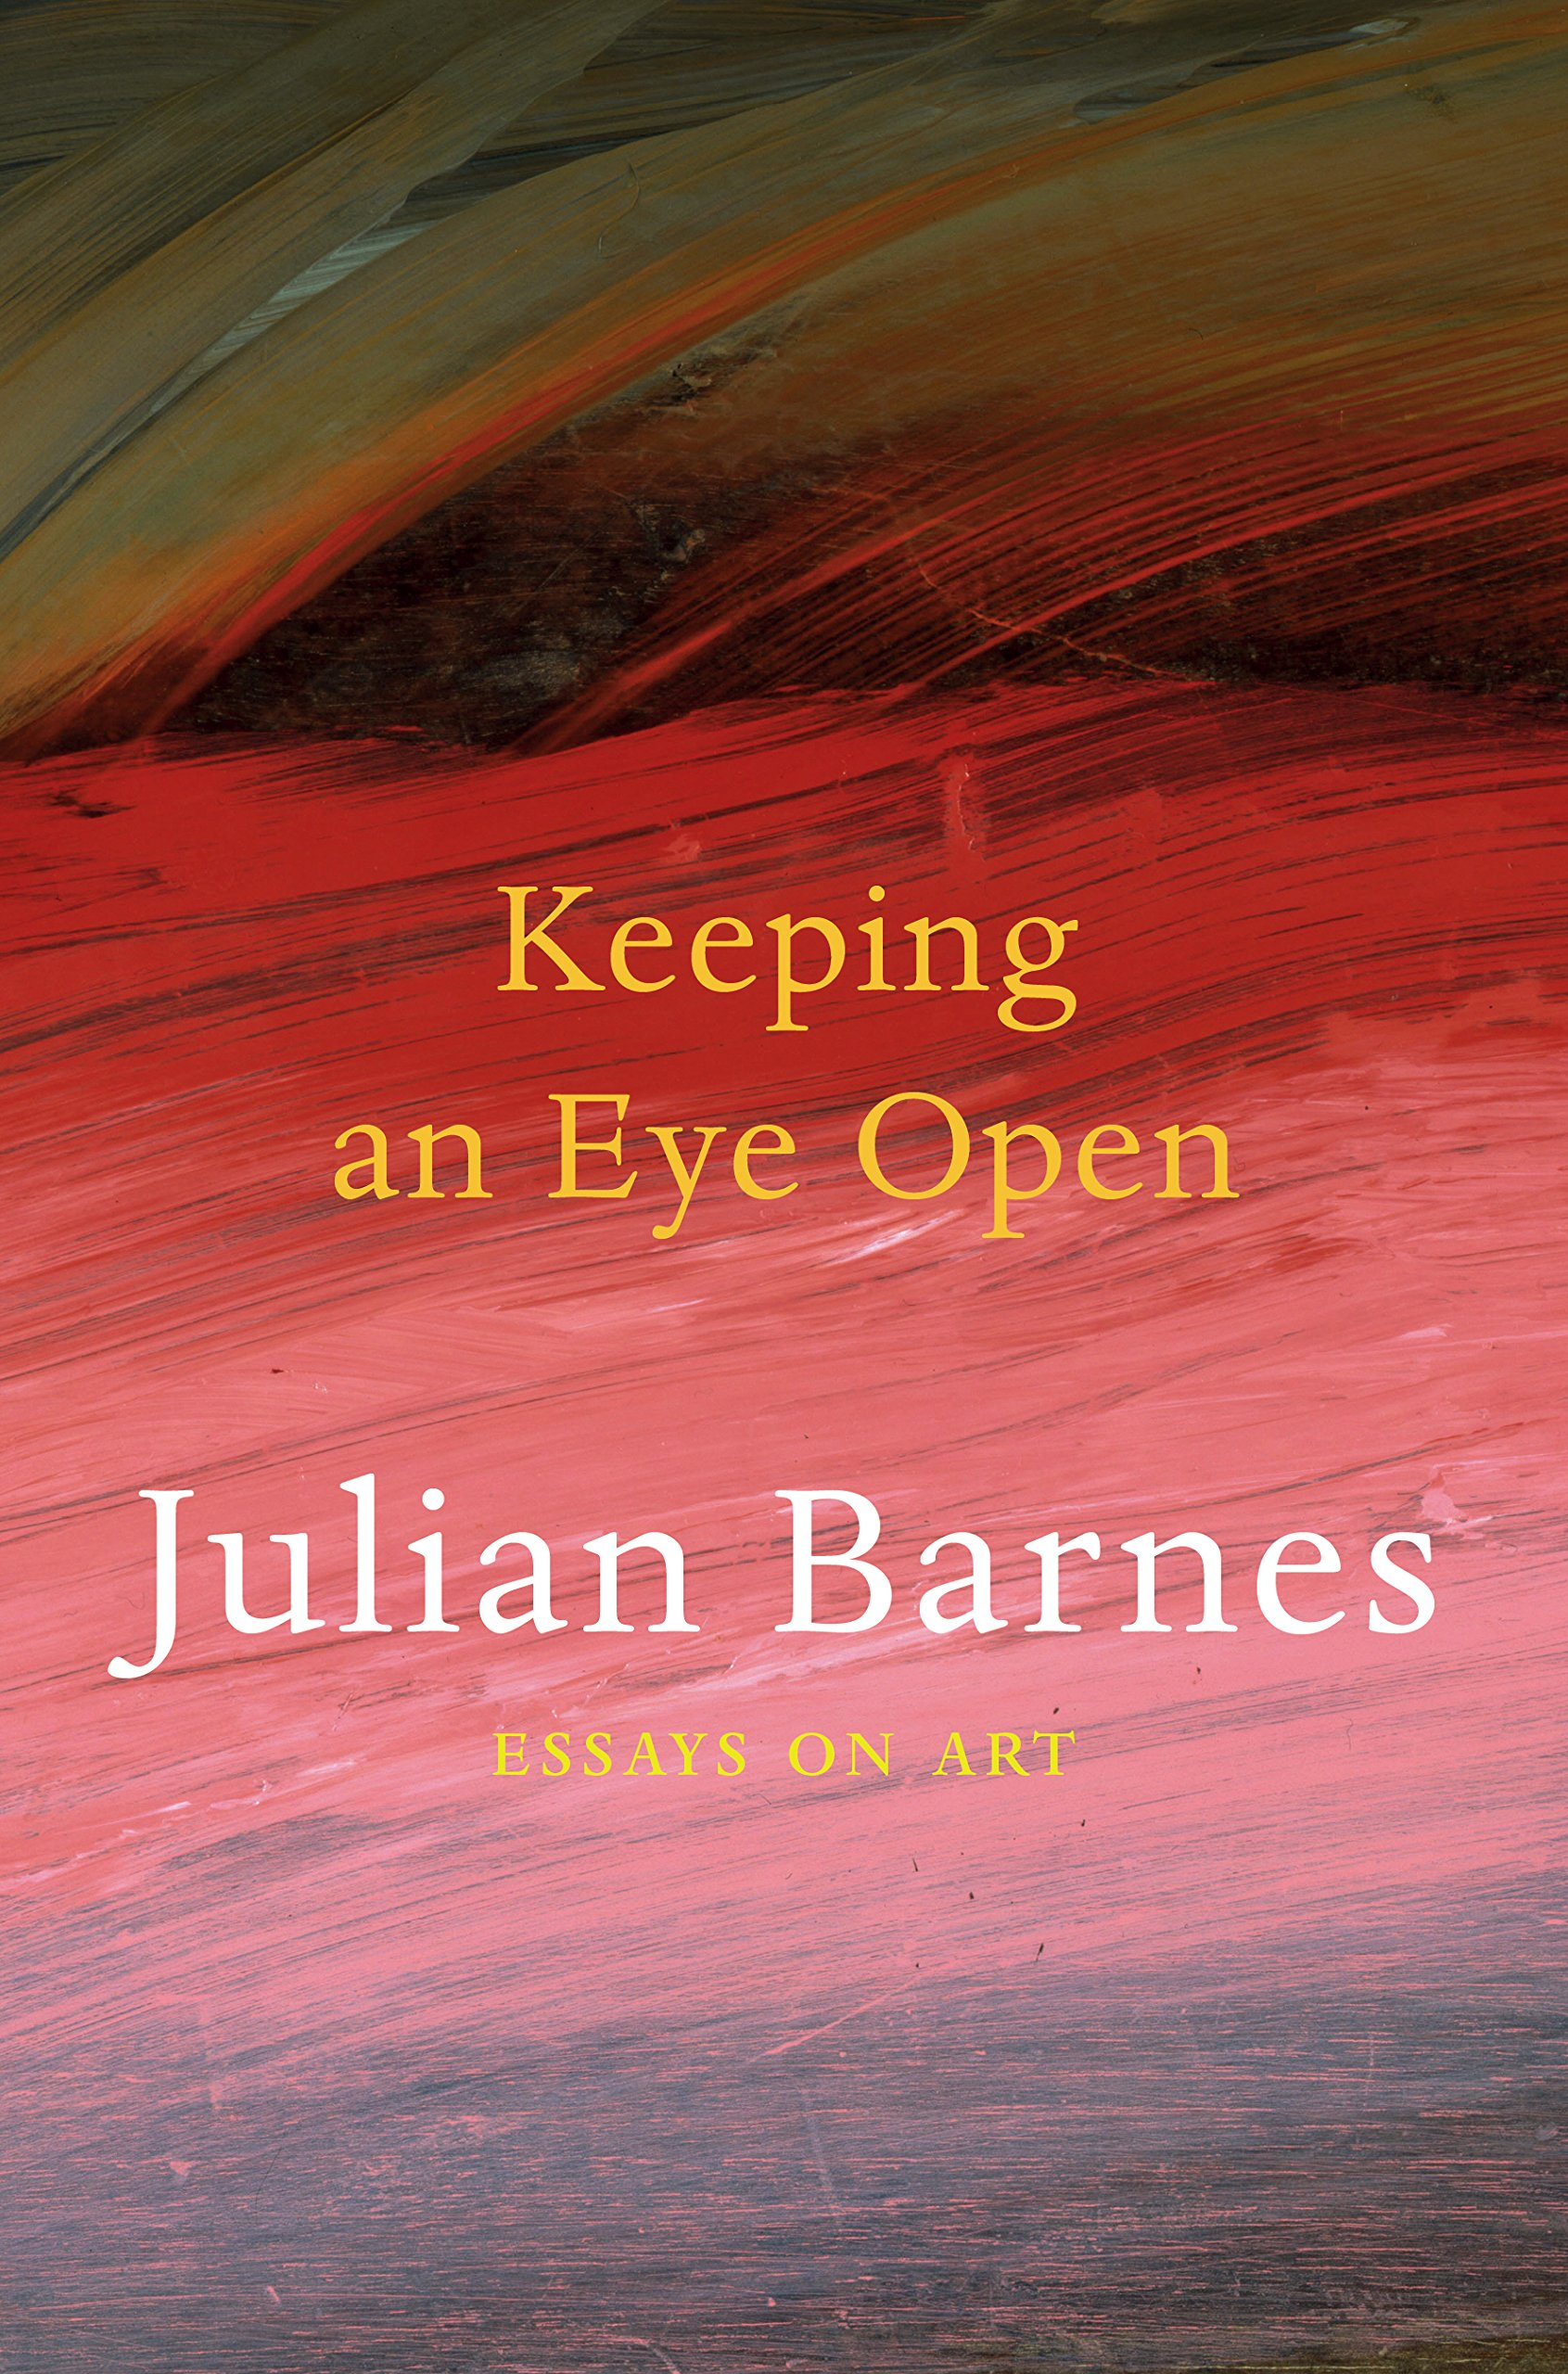 an eye open essays on art by julian barnes keeping an eye open essays on art by julian barnes